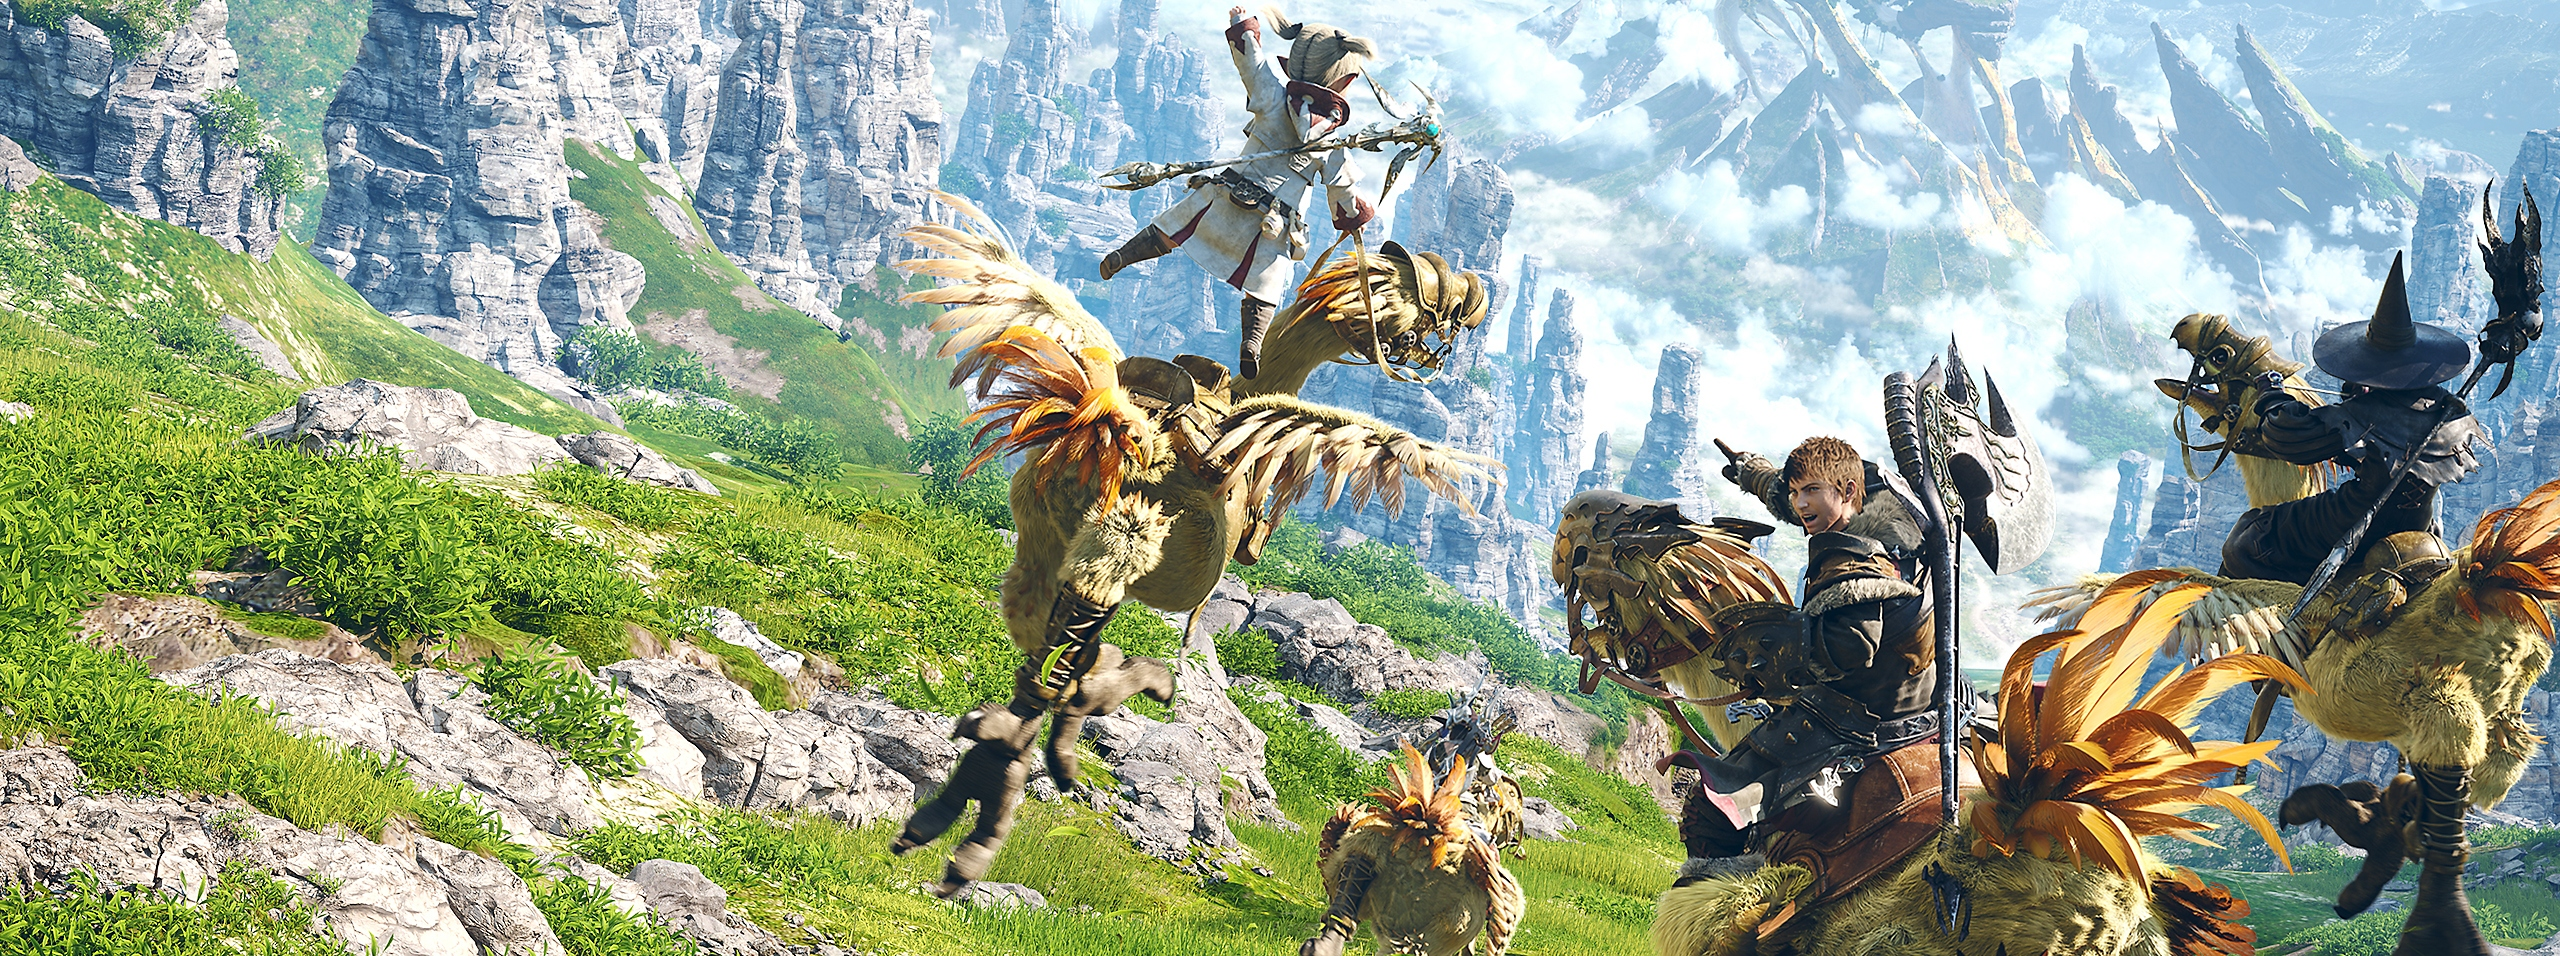 Final Fantasy XIV Online – key art